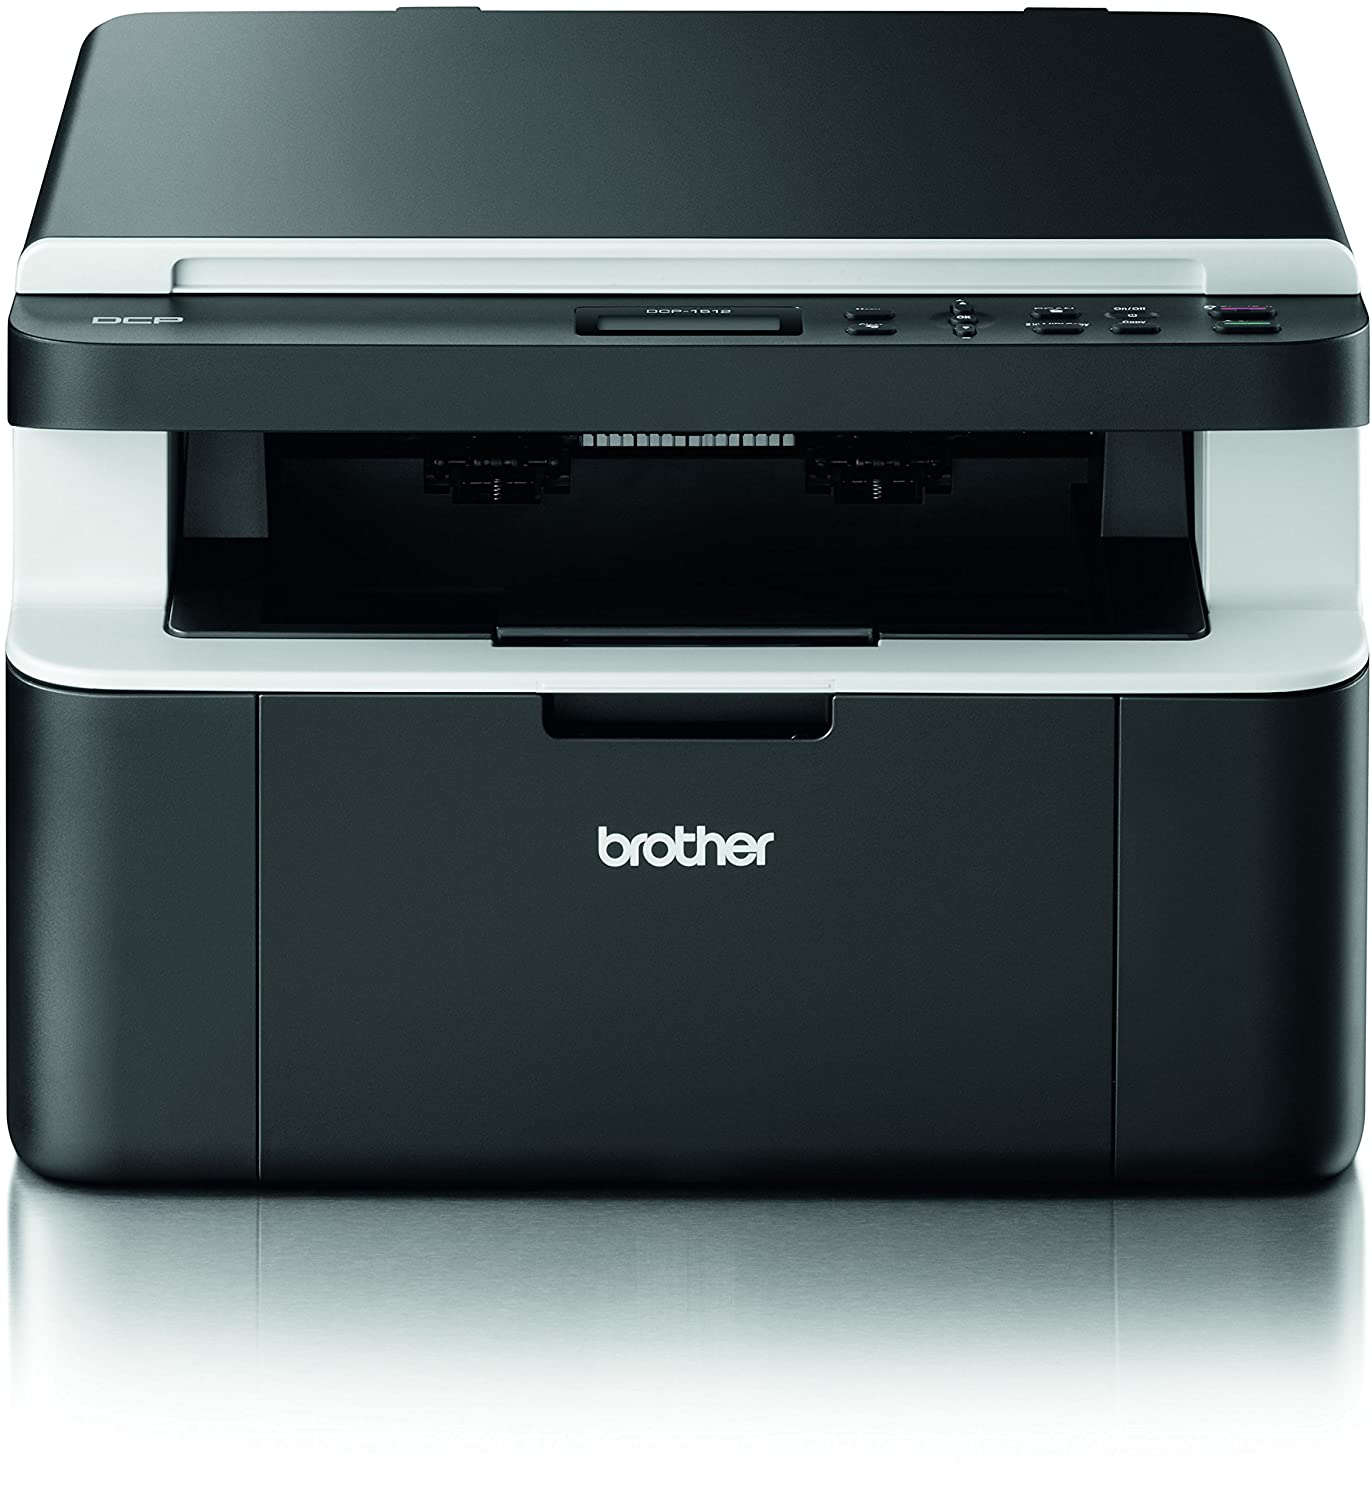 Brother DCP-1512 MFP Stampante Laser, A4, Nero DCP1512G1